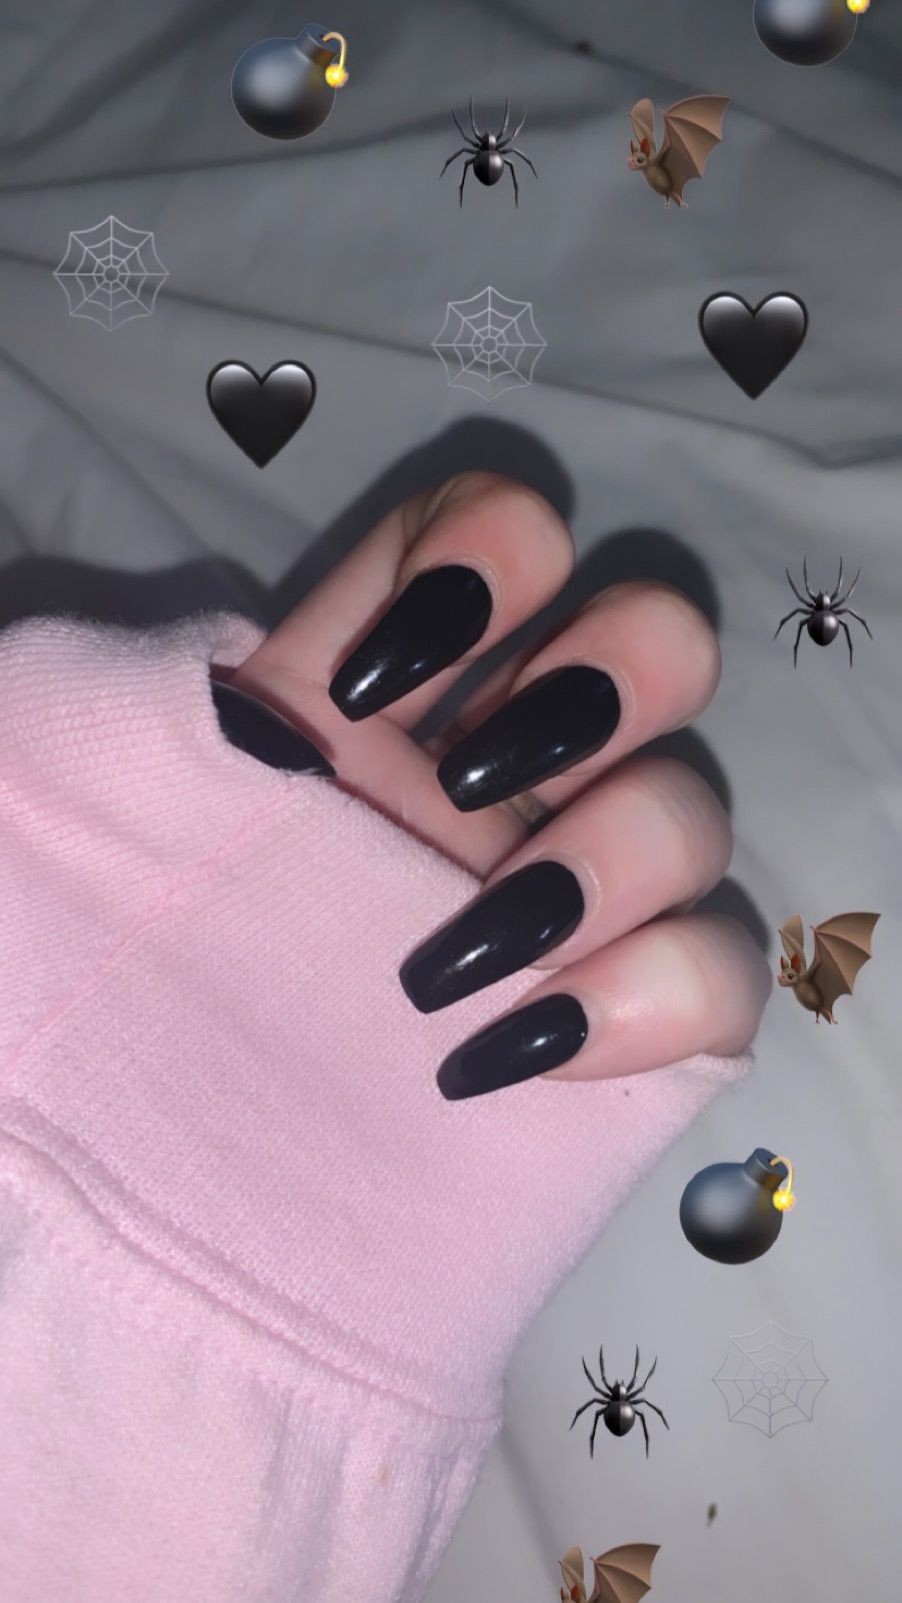 Black Acrylic Nails Aesthetic By Me Black Acrylic Nail Designs Black Acrylic Nails Wedding Acrylic Nails